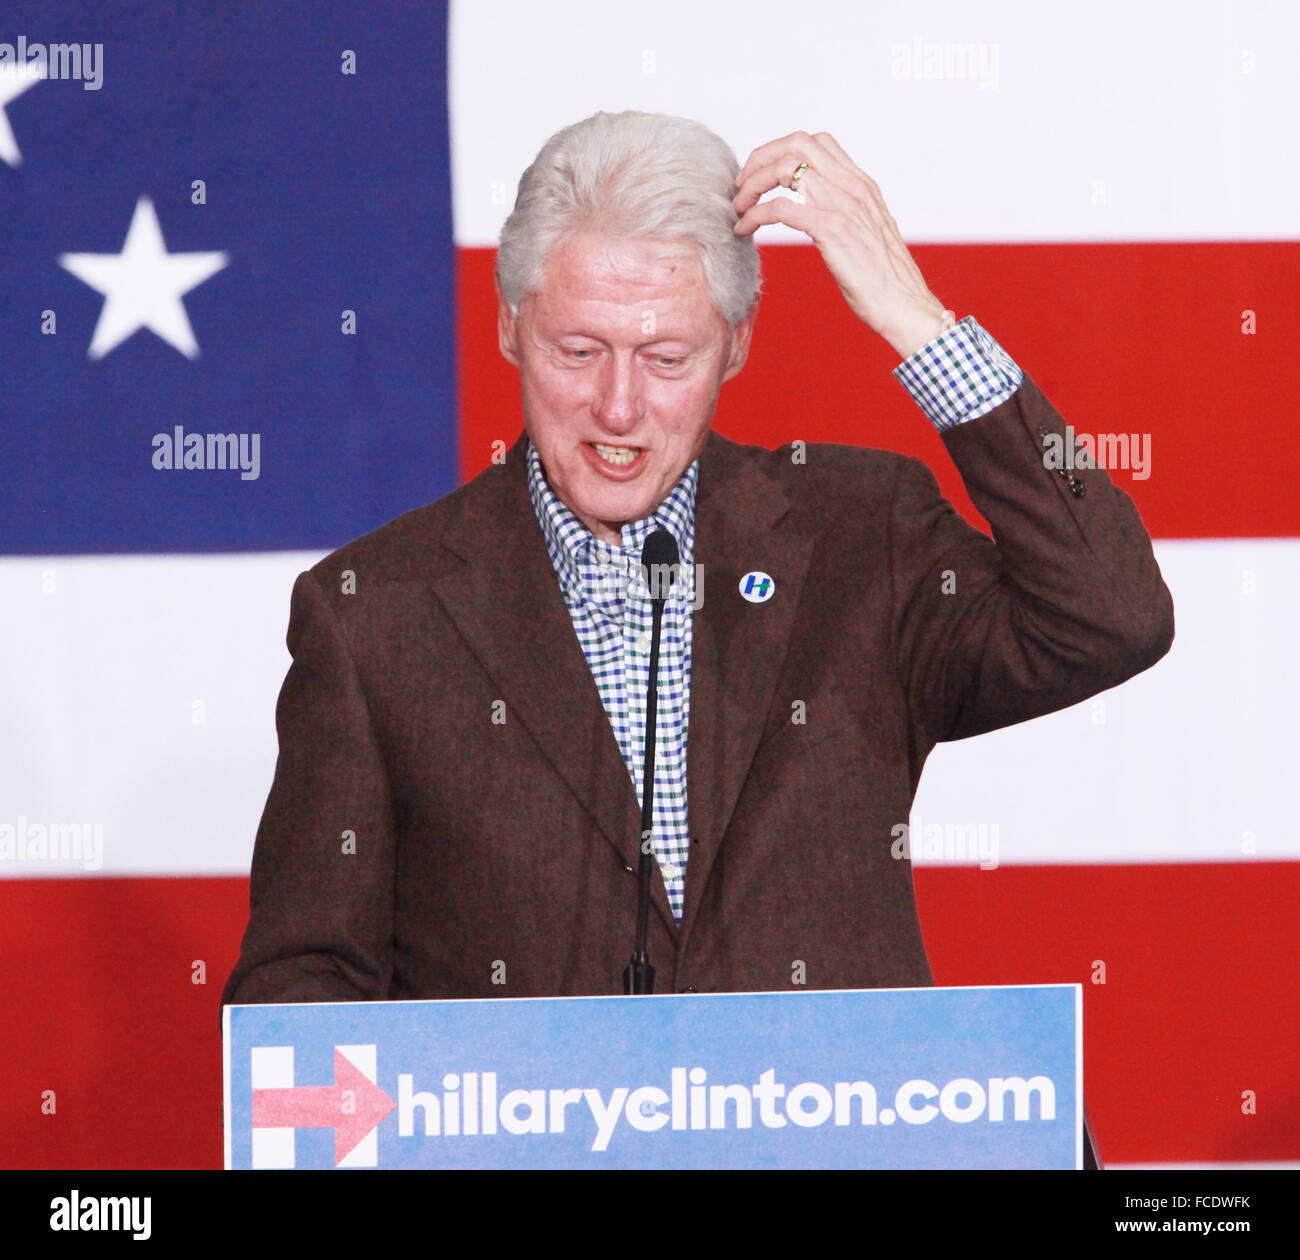 Las Vegas, Nevada, USA. 22nd Jan, 2016. Former President Bill Clinton campaigns for wife Hillary Clinton on January - Stock Image